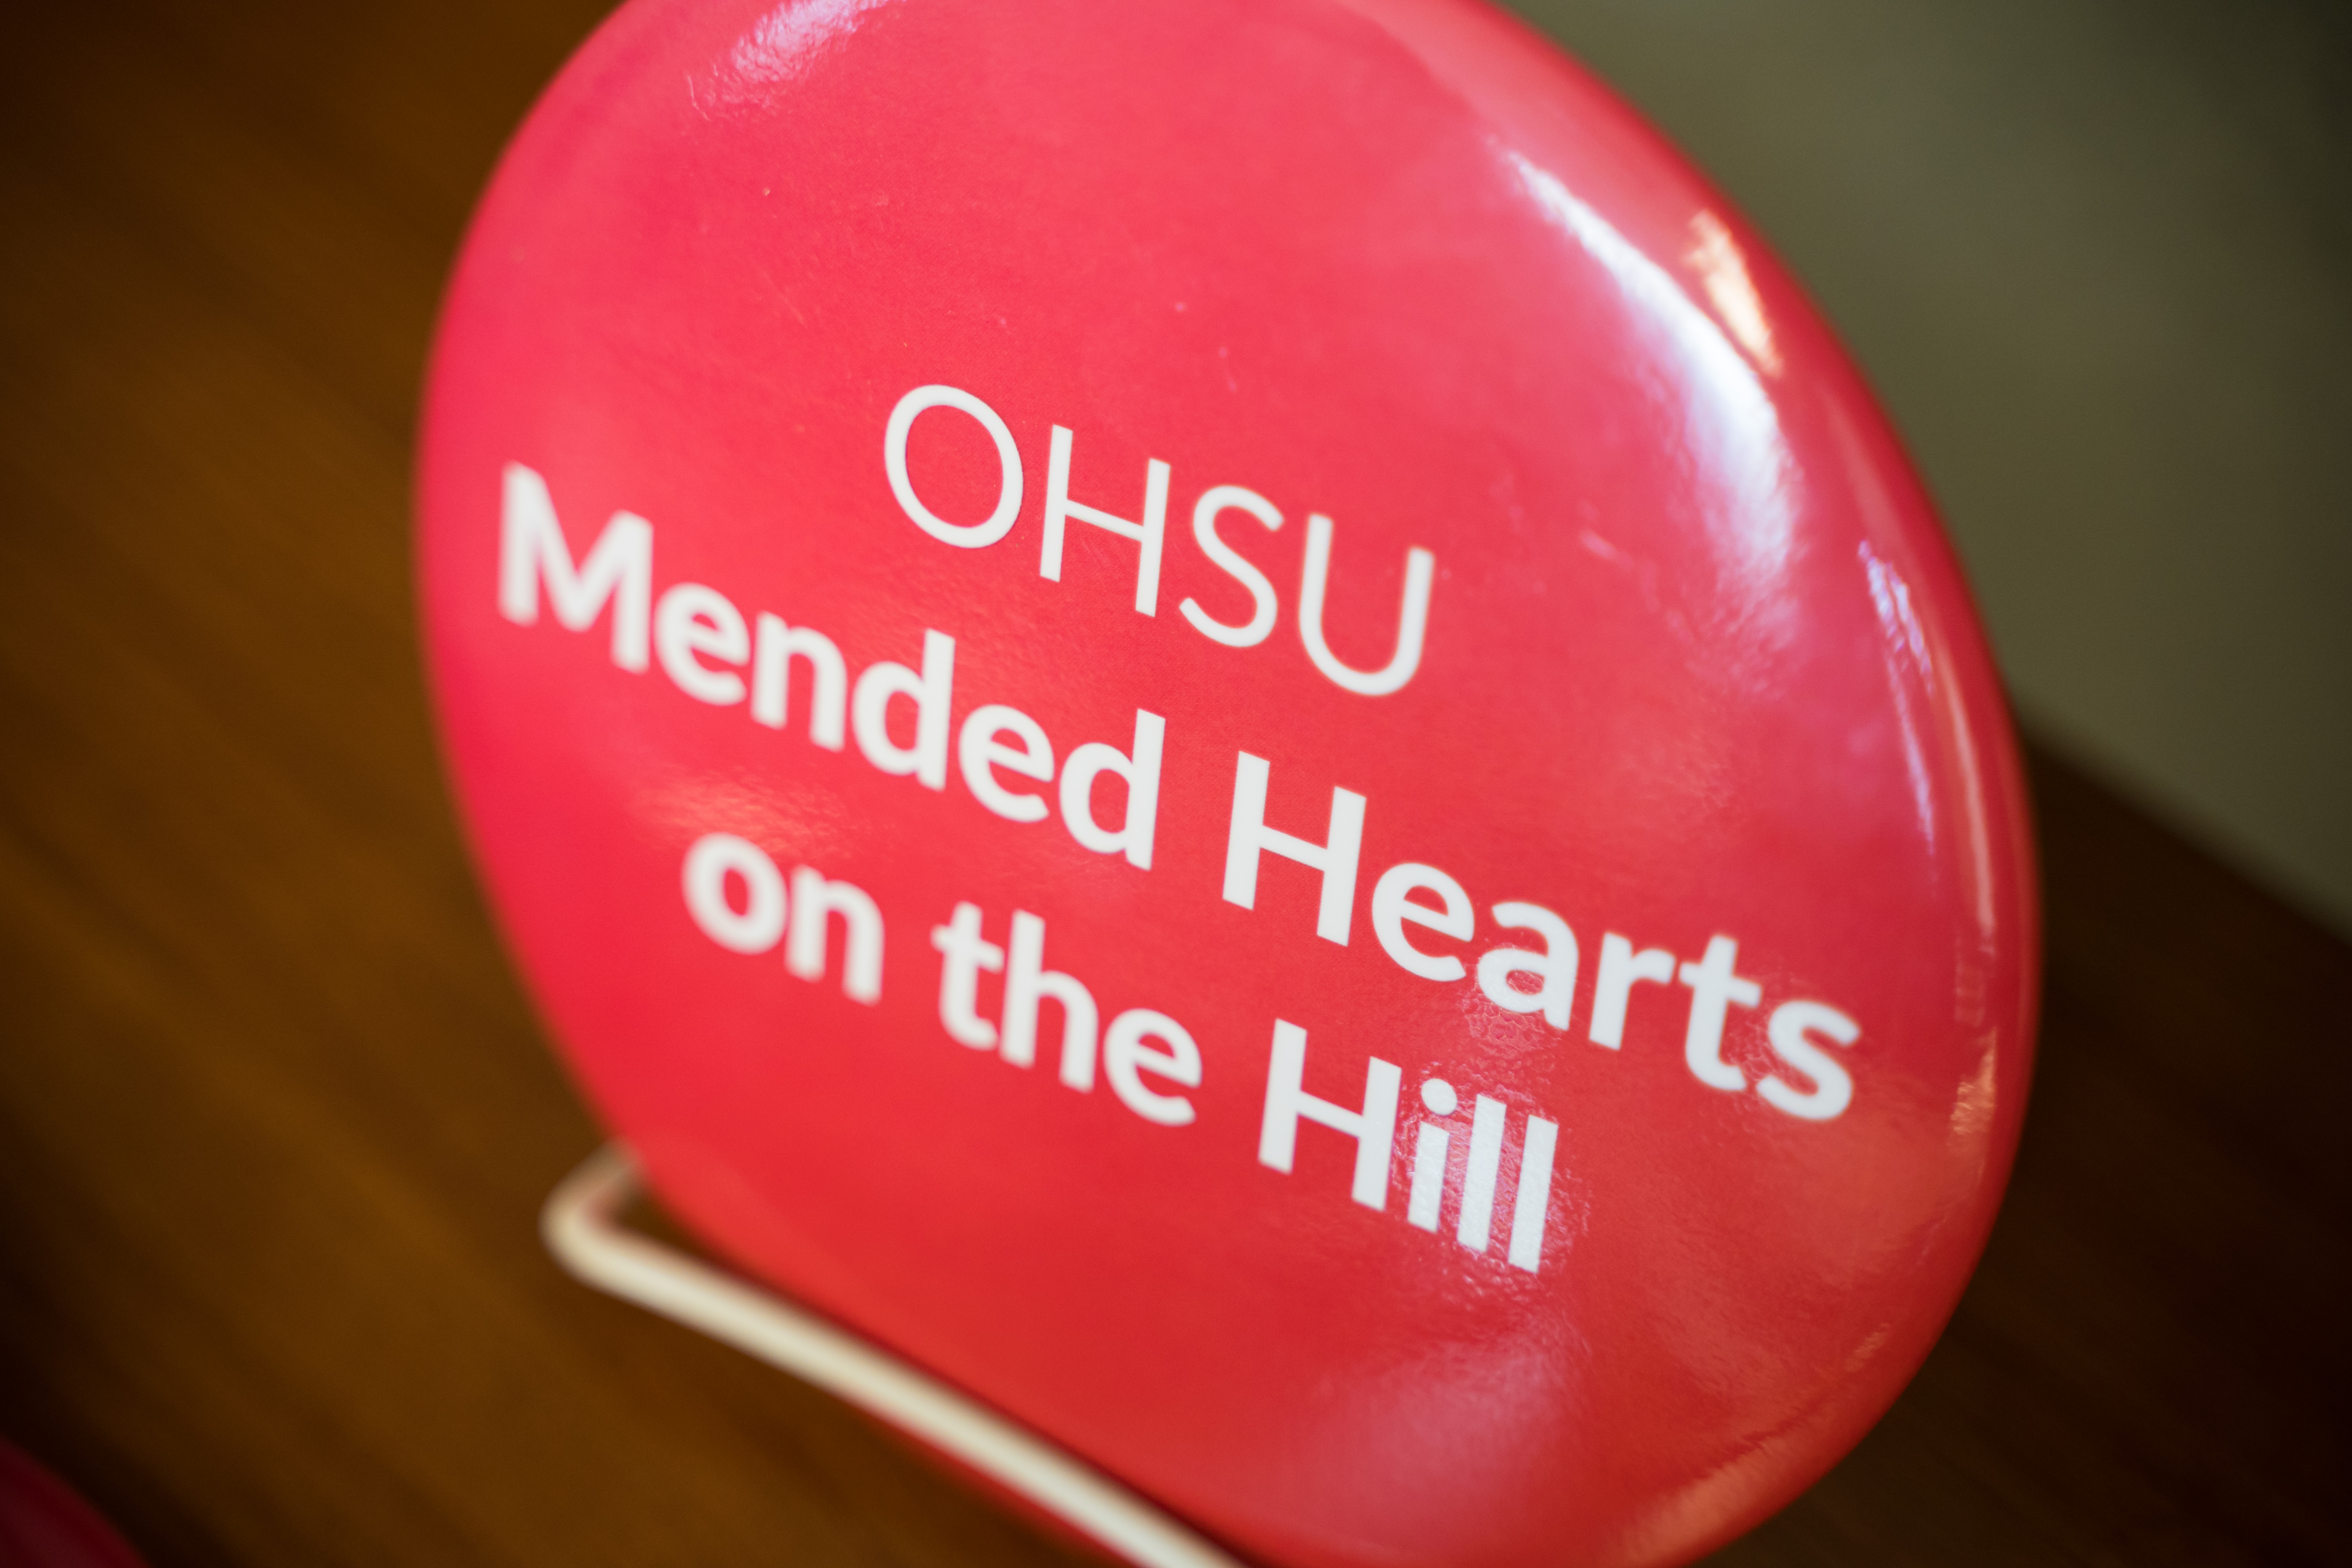 Large button that says OHSU Mended Hearts on the Hill